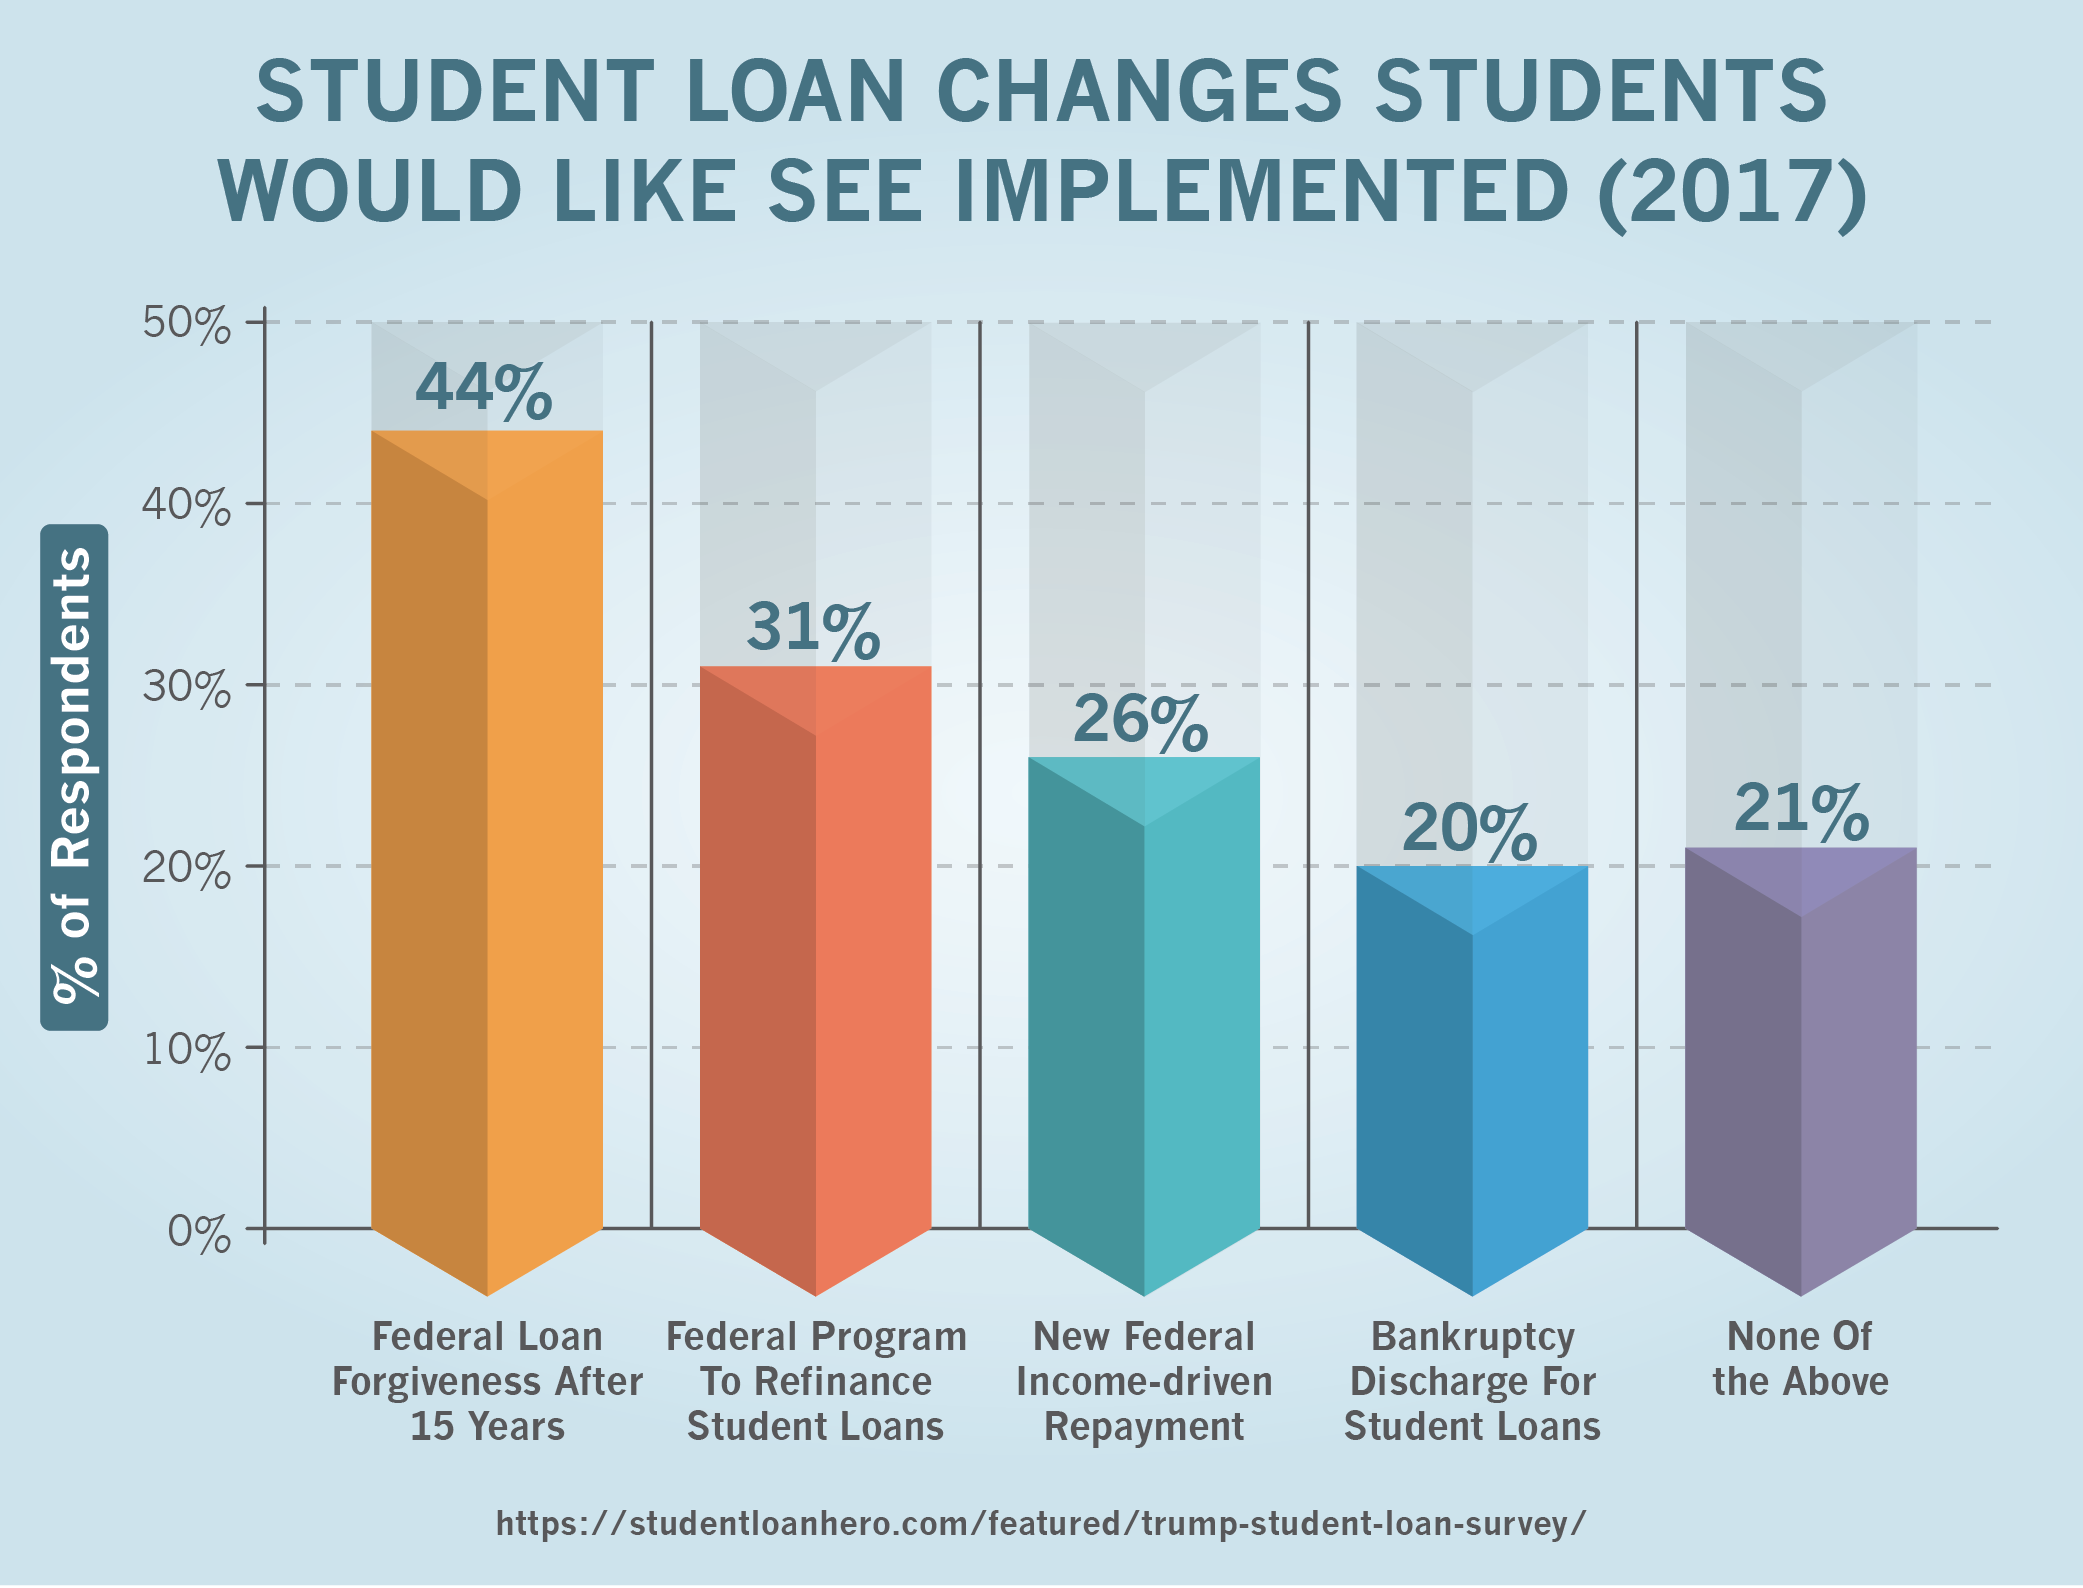 Student Loan Changes Students Would Like See Implemented (2017)